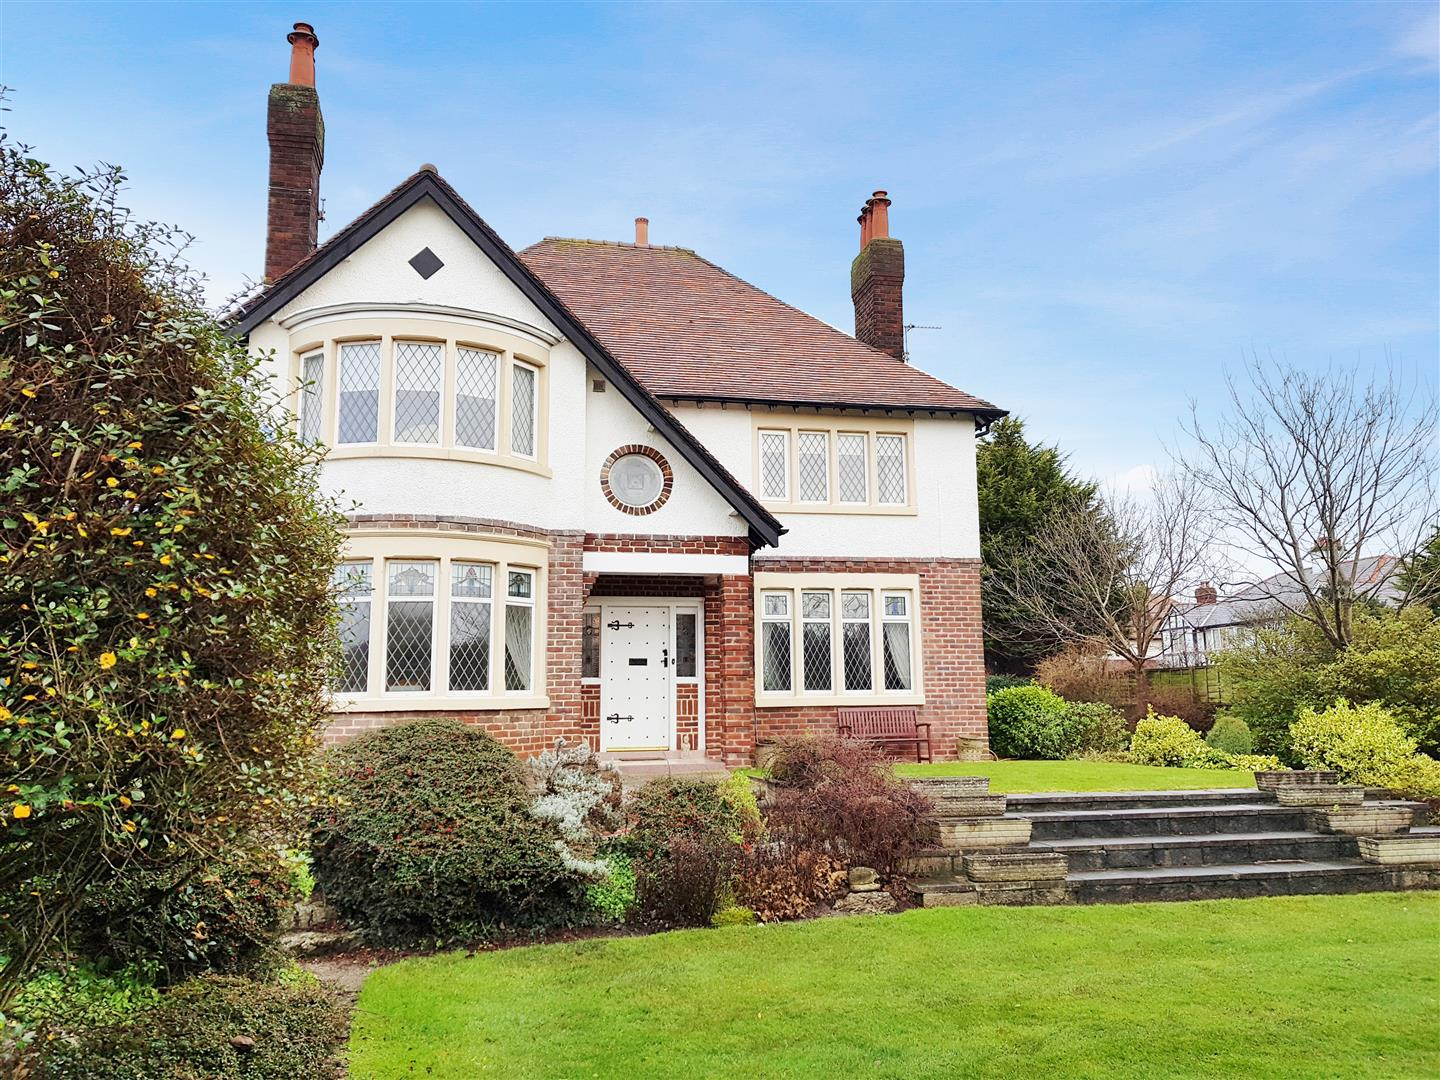 4 Bedrooms Detached House for sale in Clifton Drive South, Lytham St. Annes